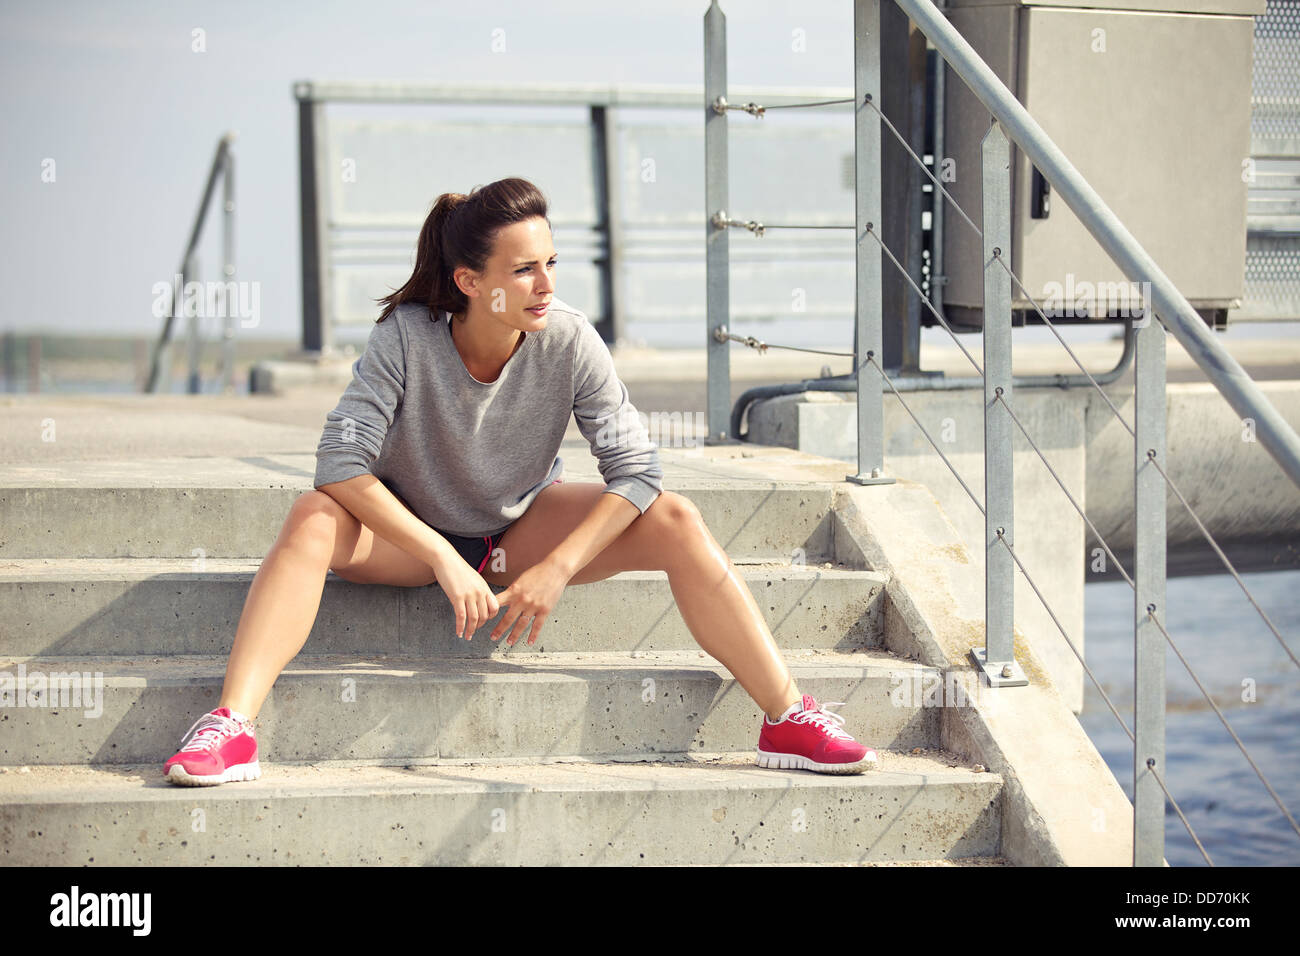 Female athlete sitting on the stairs taking a break from running - Stock Image